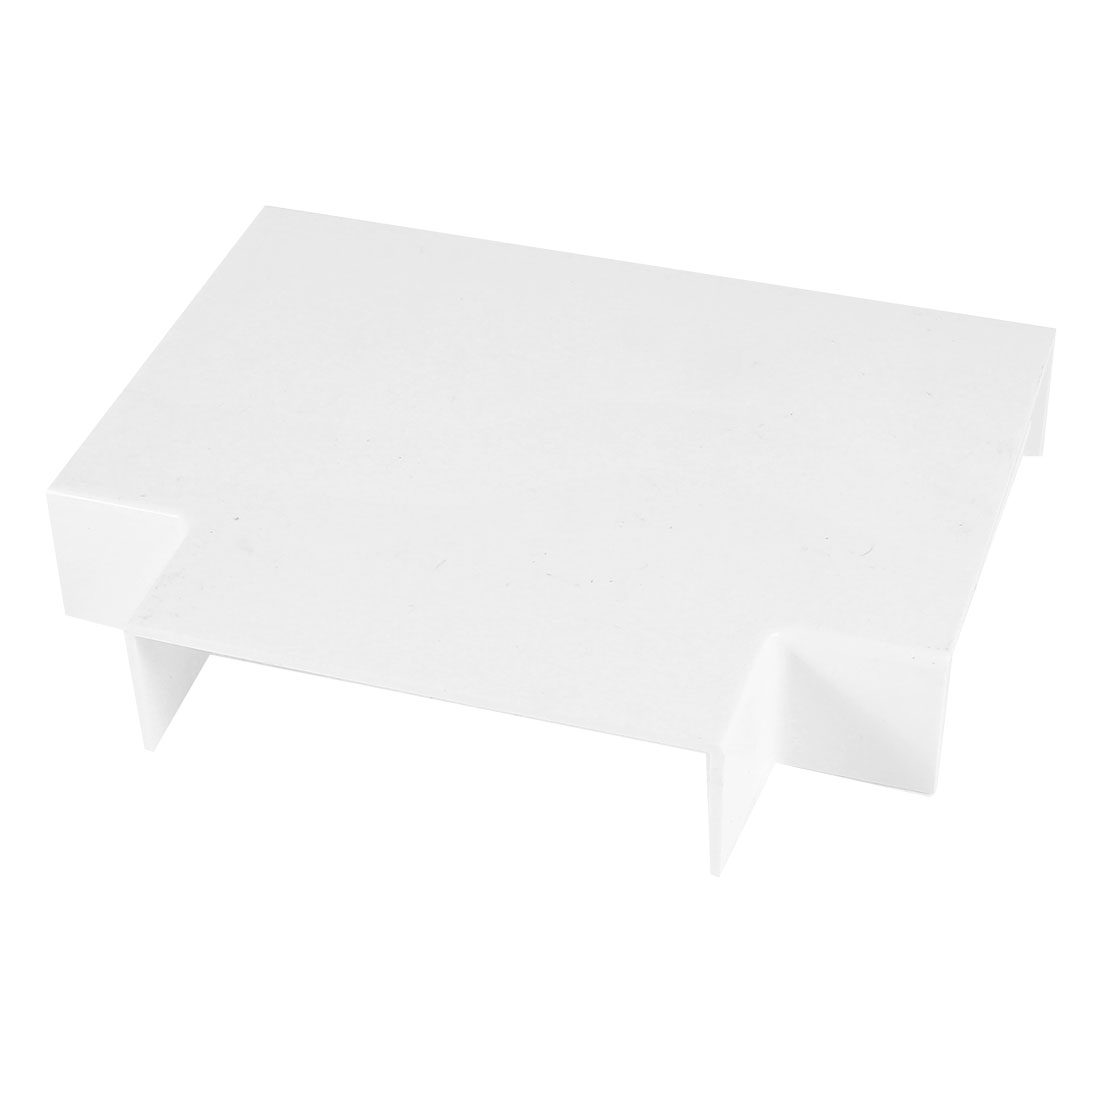 99mm x 99mm x 27mm 3 Way White PVC Flat Tee Mini Trunking